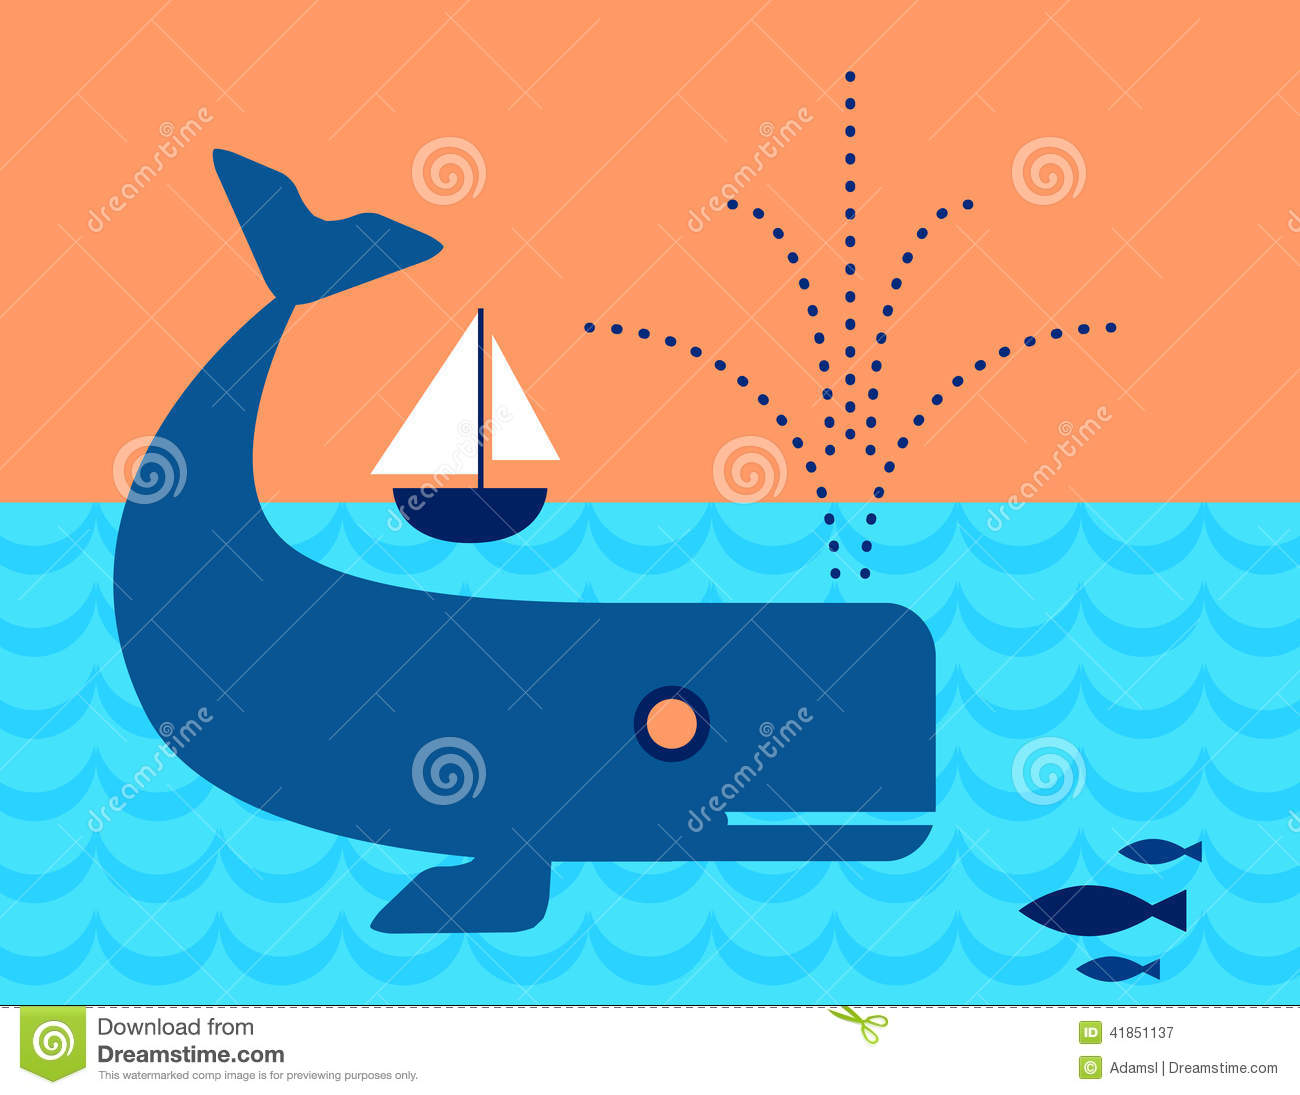 A sailboat is a fish that swims the fastest of all fish in the world. Fishing, description, speed 53